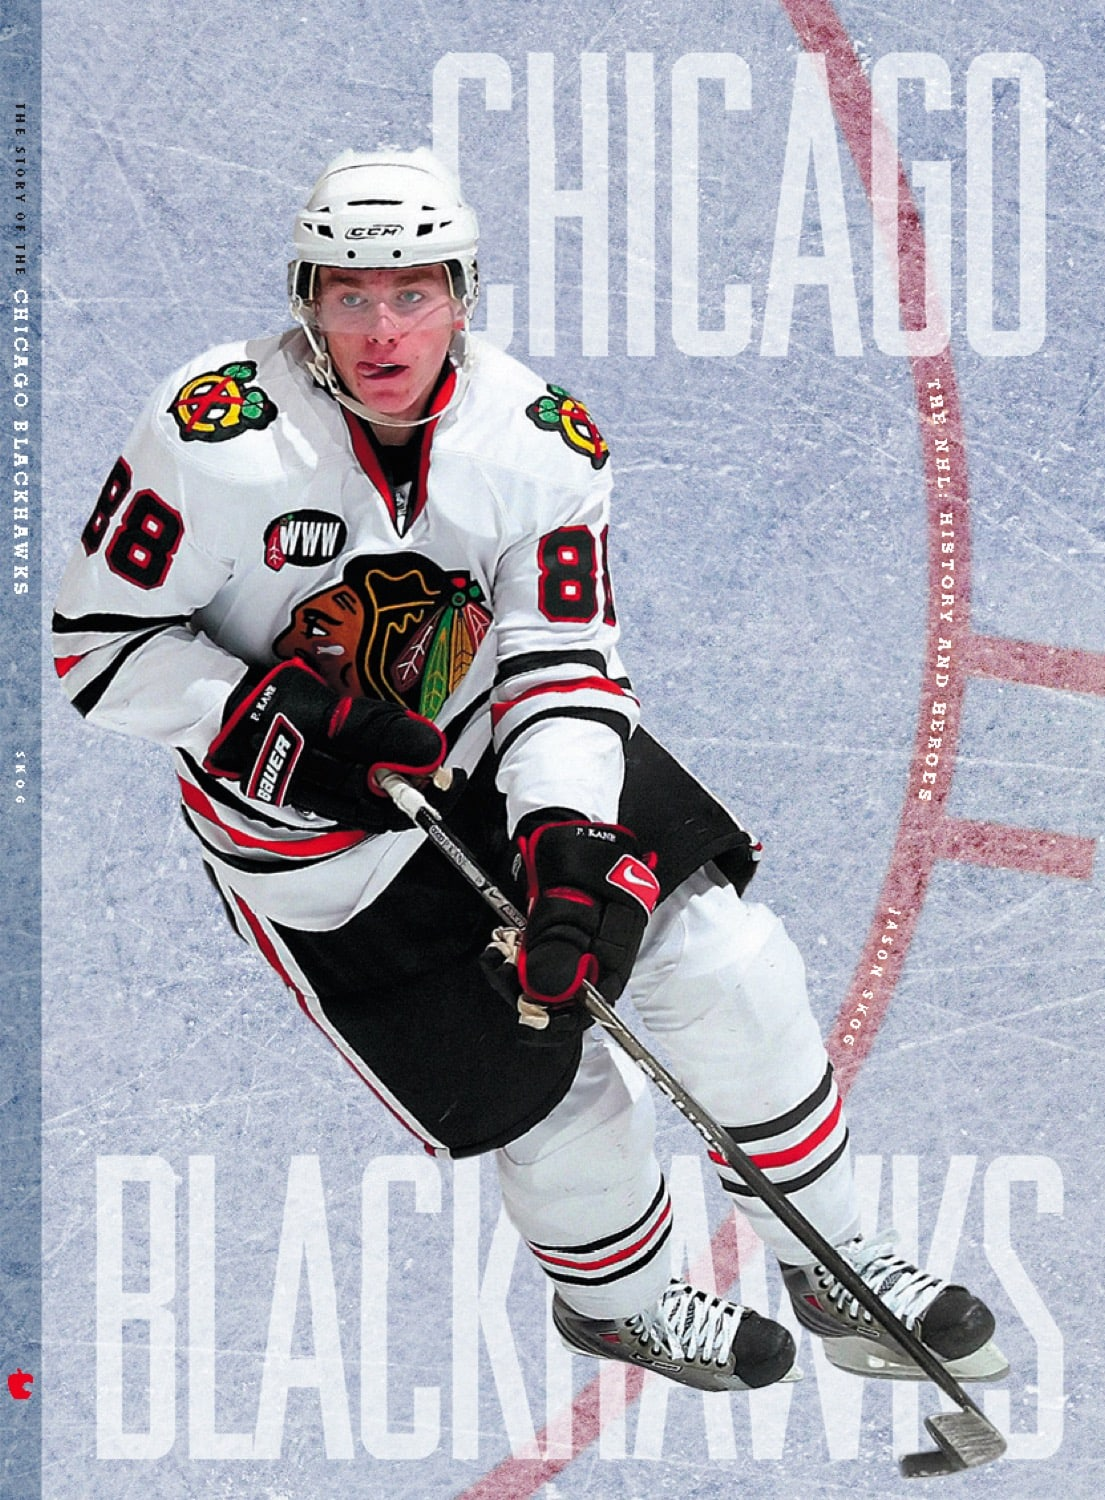 The NHL: History and Heroes: The Story of the Chicago Blackhawks